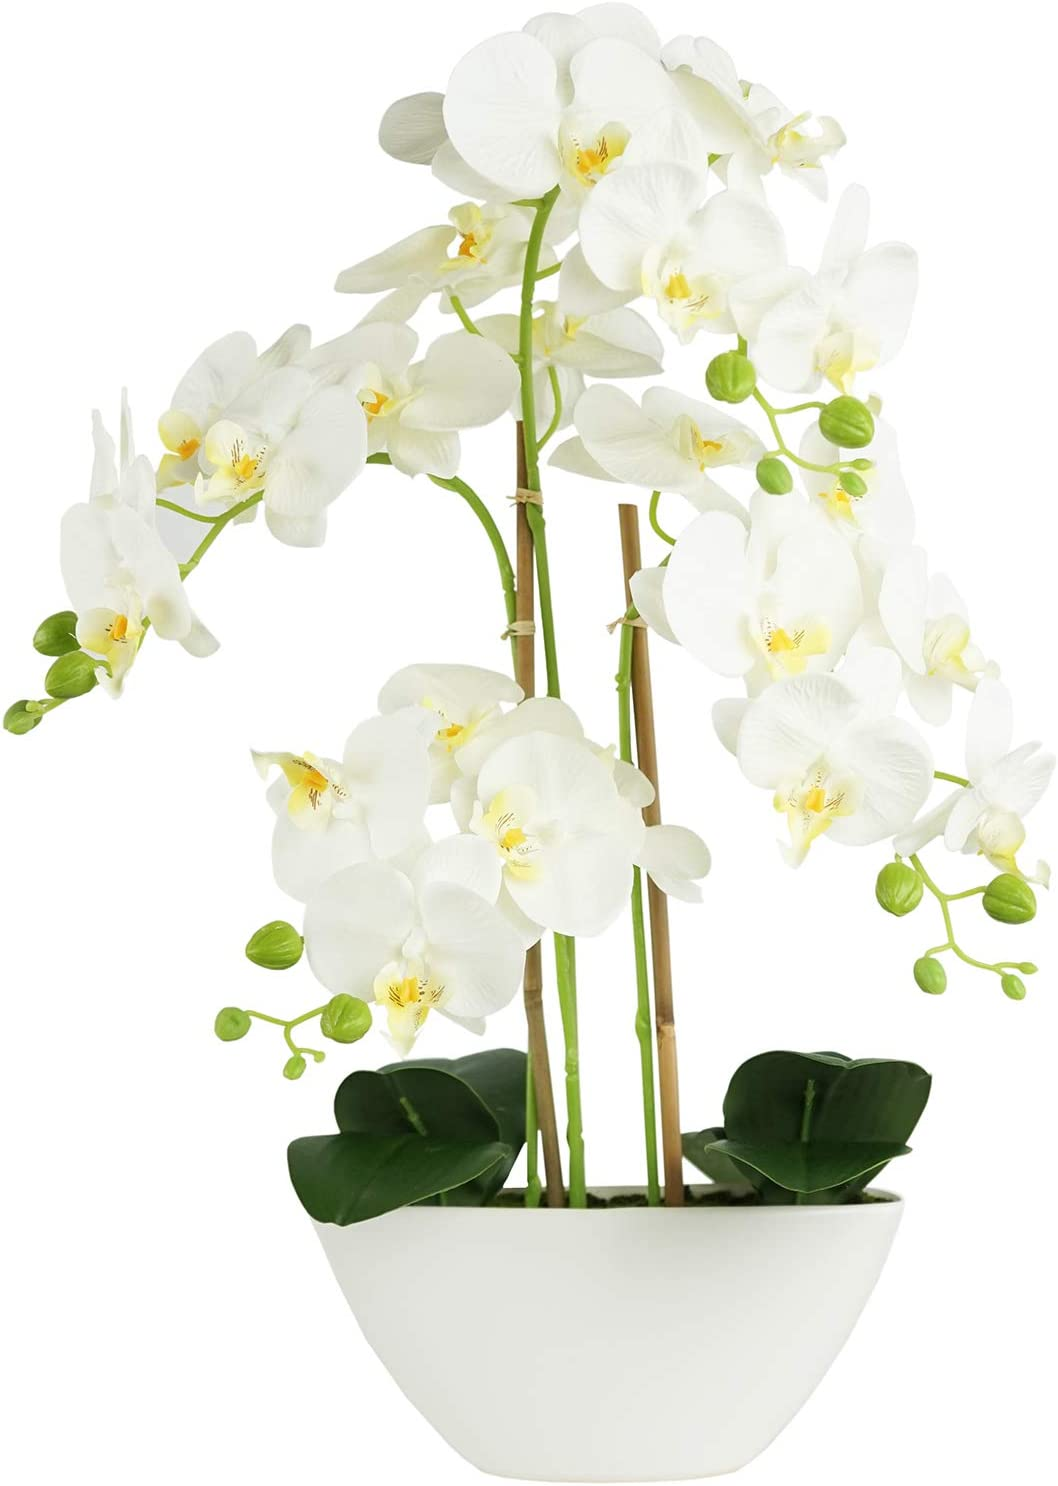 Artificial Flowers Fake Orchids in Ceramic Vase Phalaenopsis White Flowers, Artificial Plants Faux Flowers Orchids for Decoration Home Office Party Table Decor